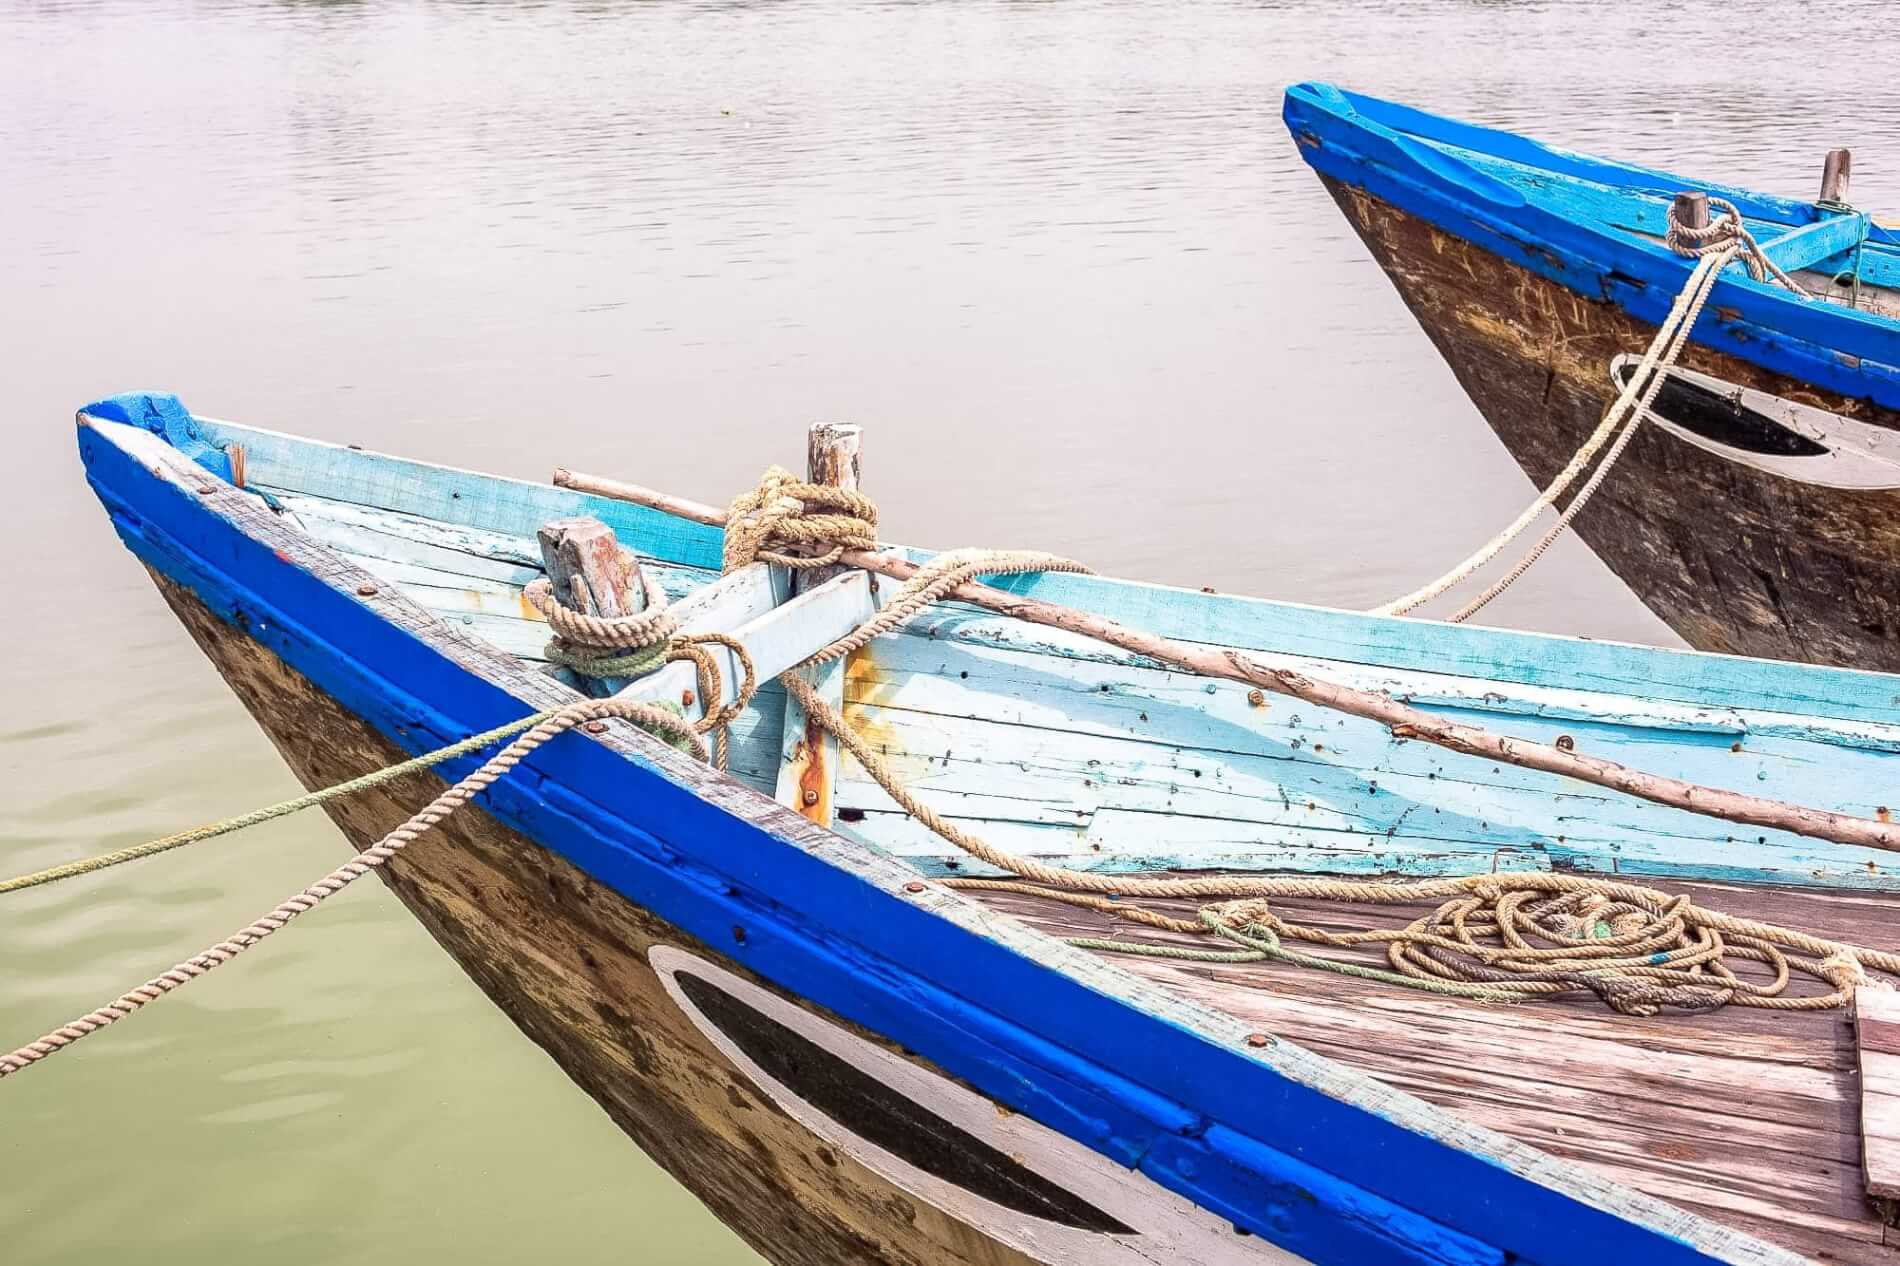 Hoi An painted boats